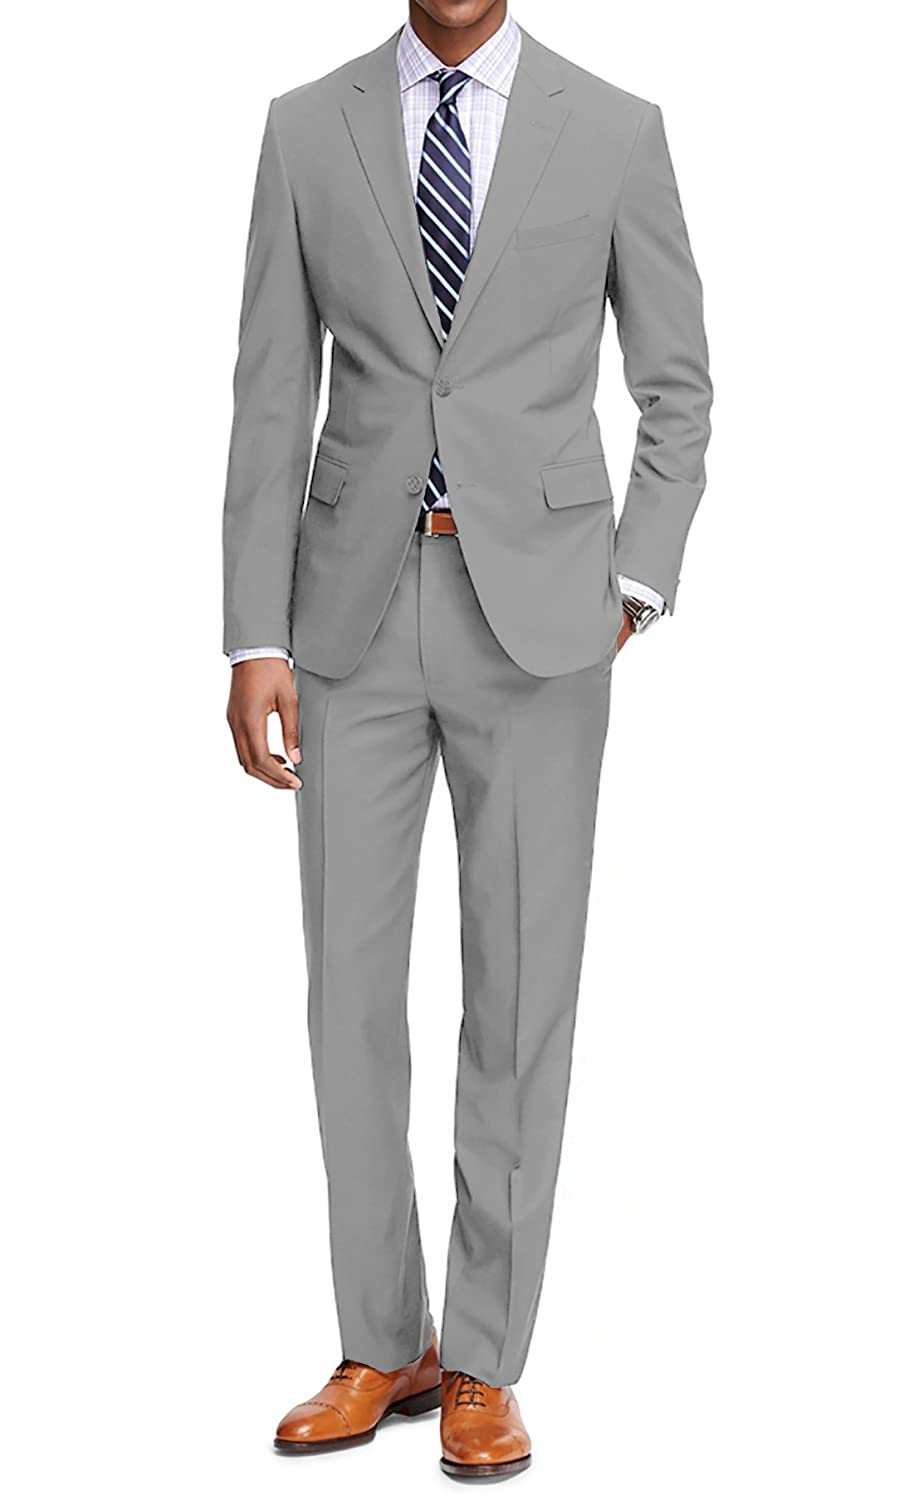 MDRN Uomo Mens Classic Fit 2 Piece Suit